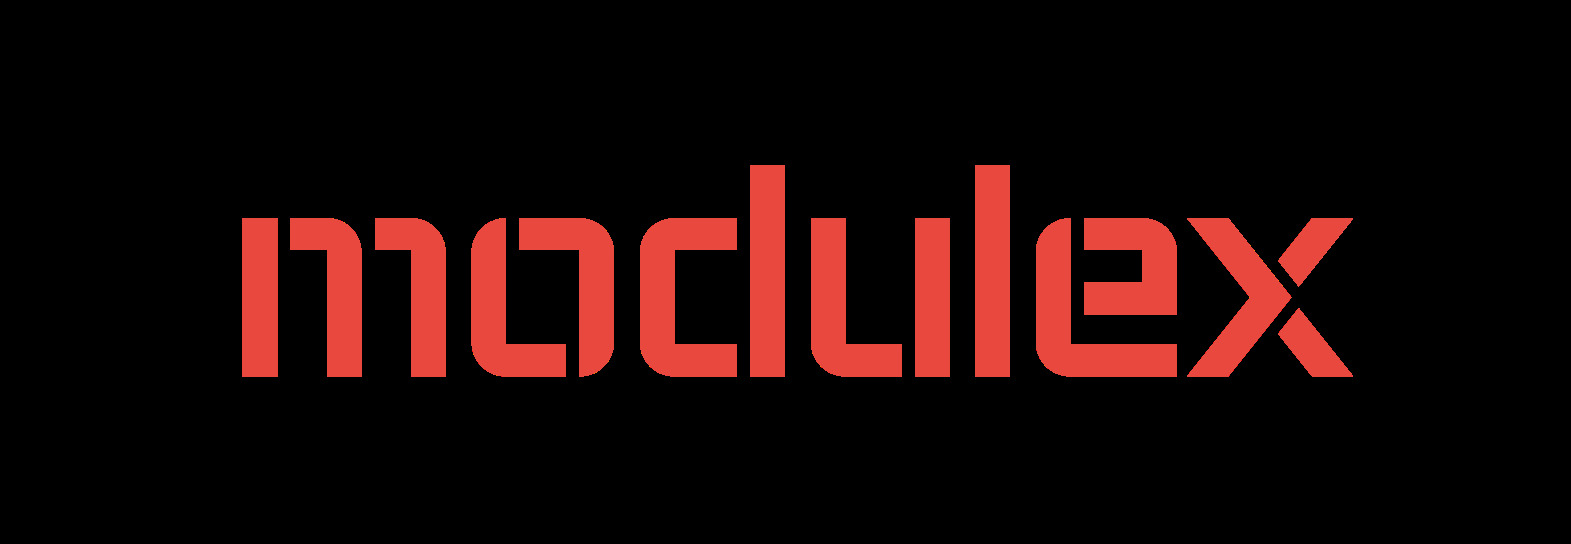 Logo featuring 'Modulex' in red lower-case letters on a black background